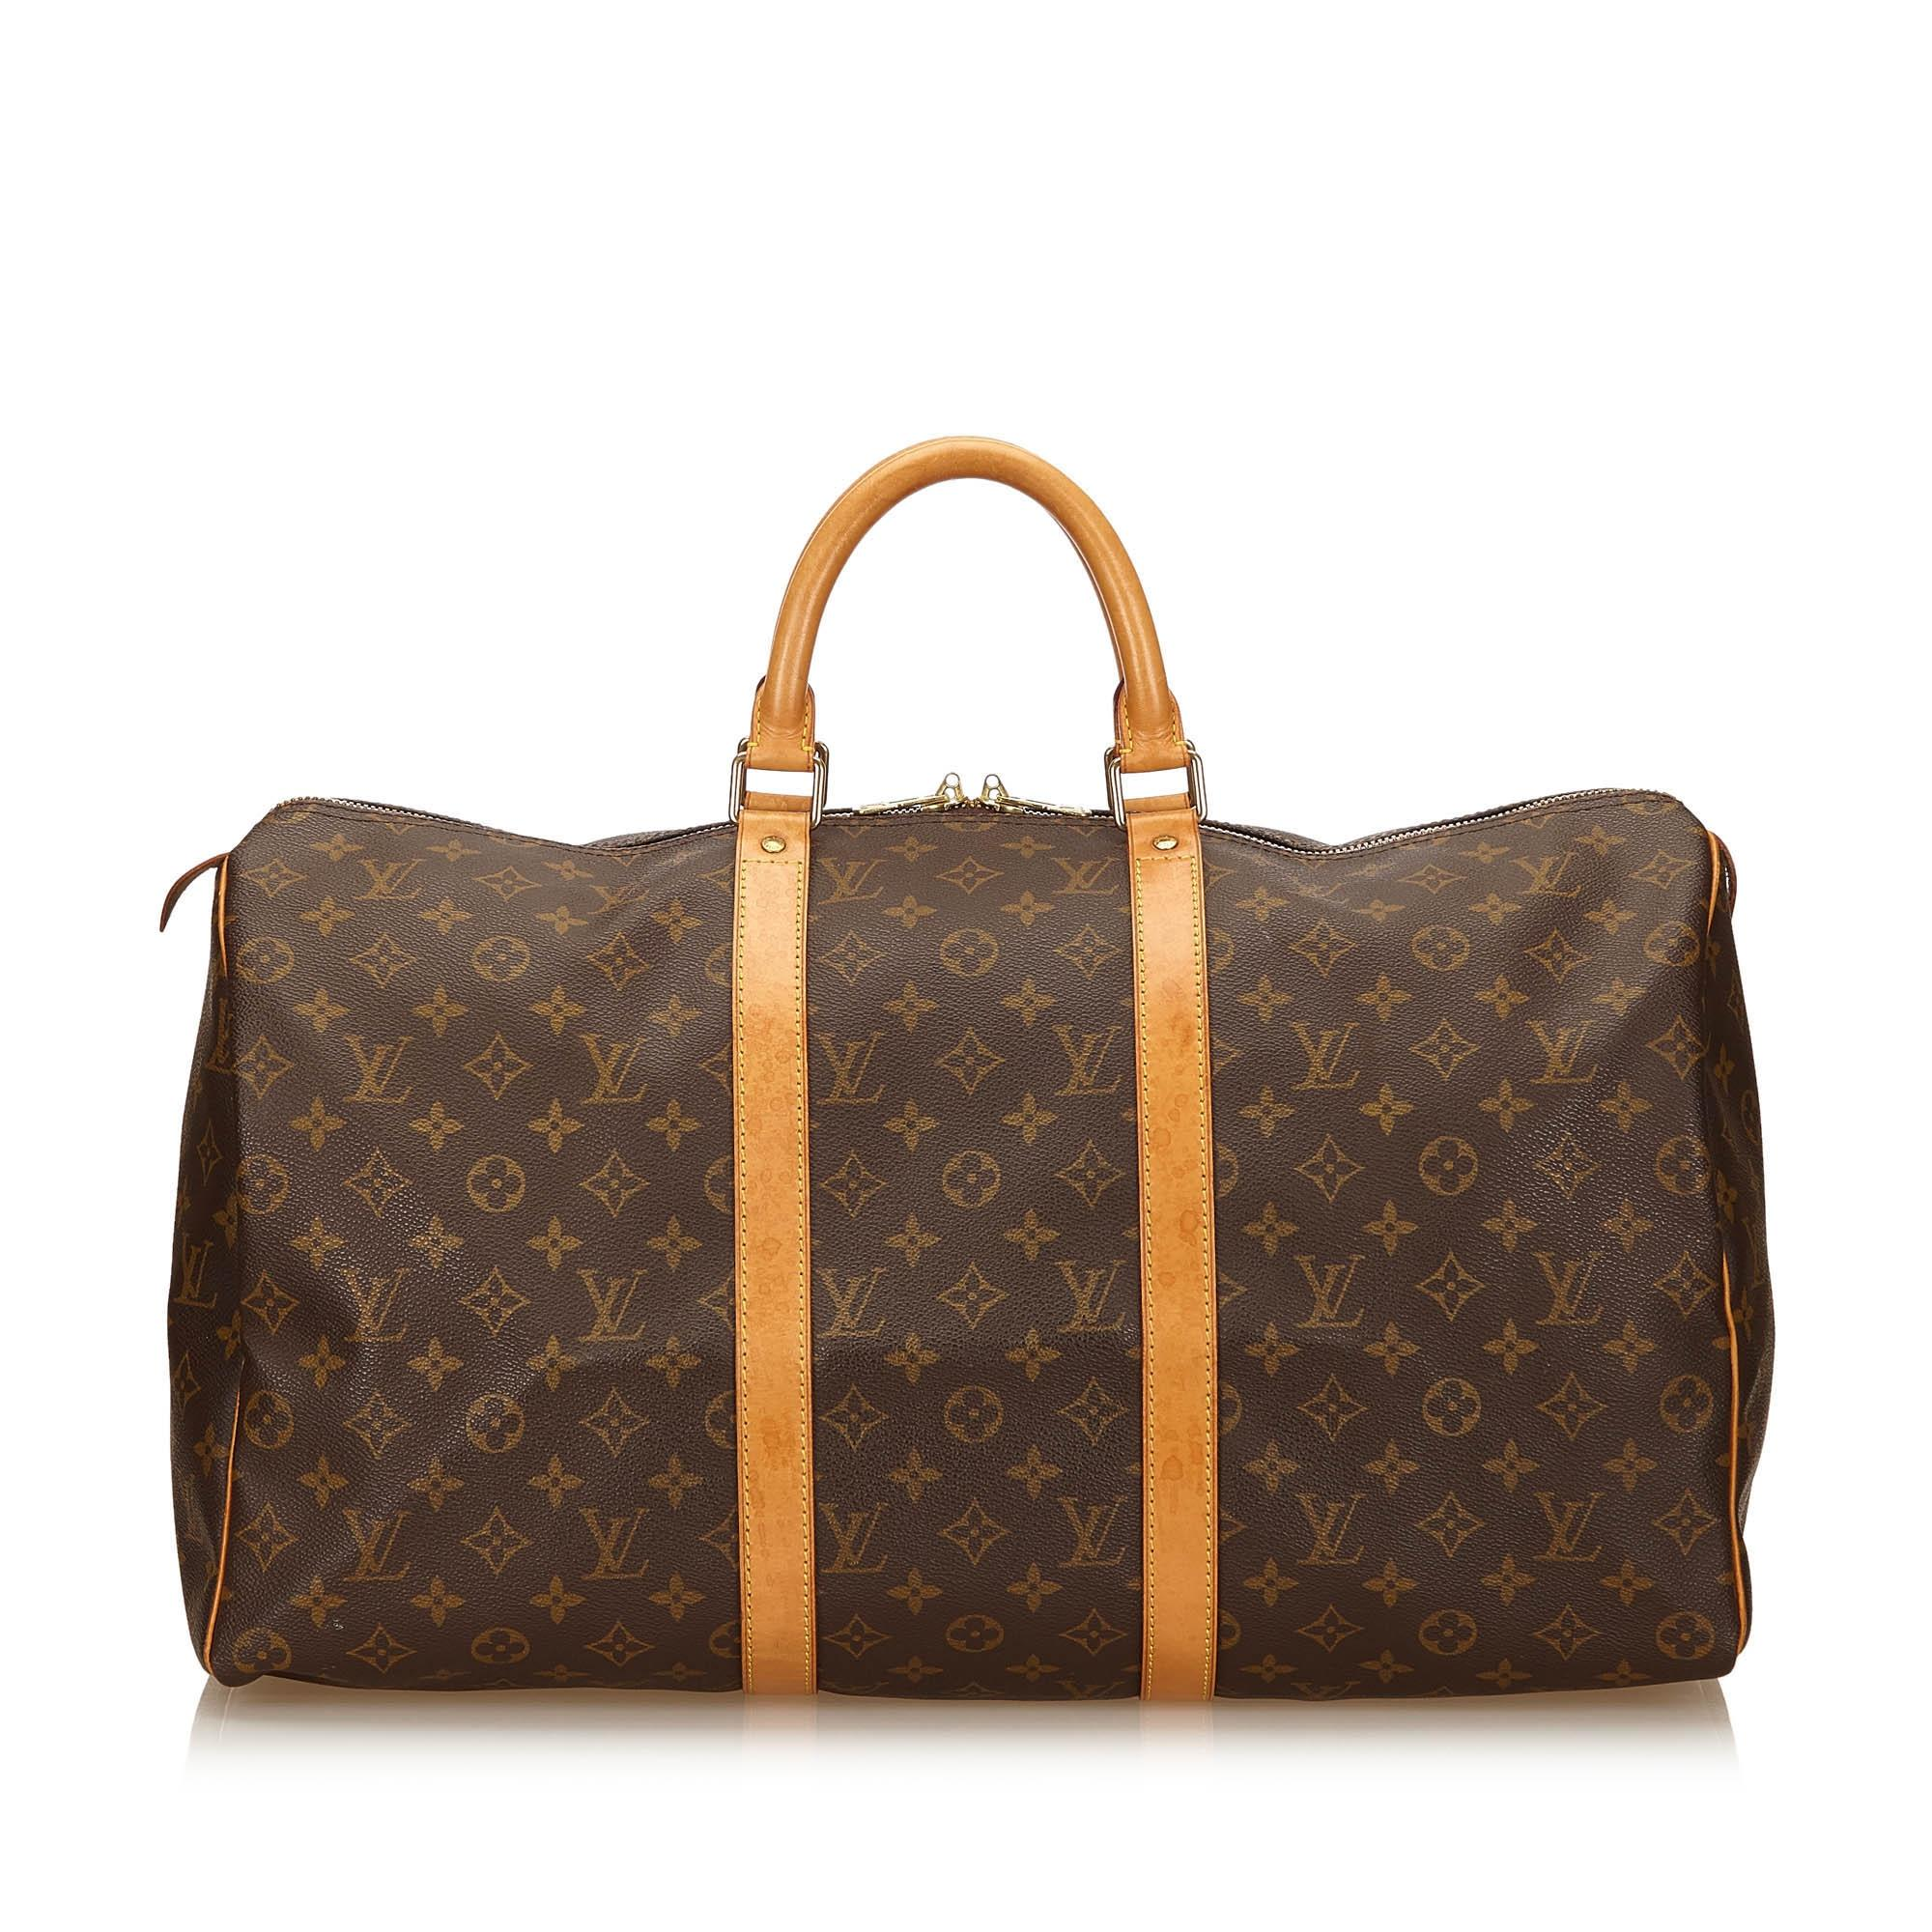 sale louis vuitton bags